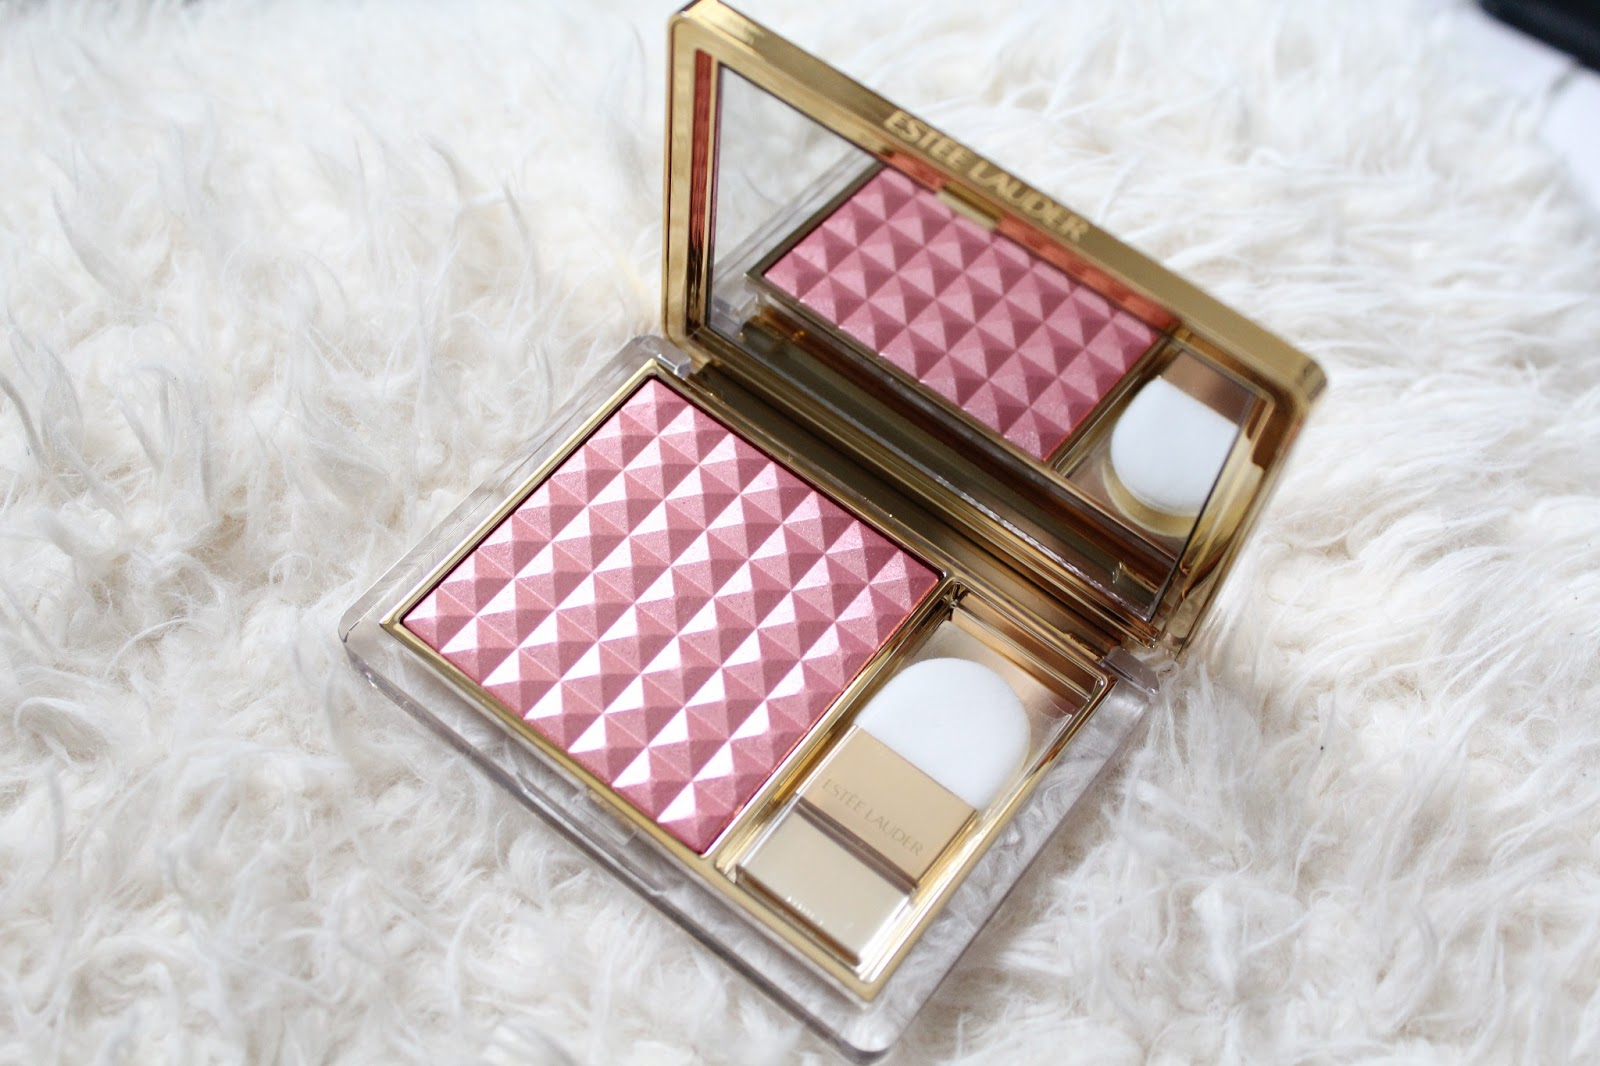 Estee Lauder Blush in Tease